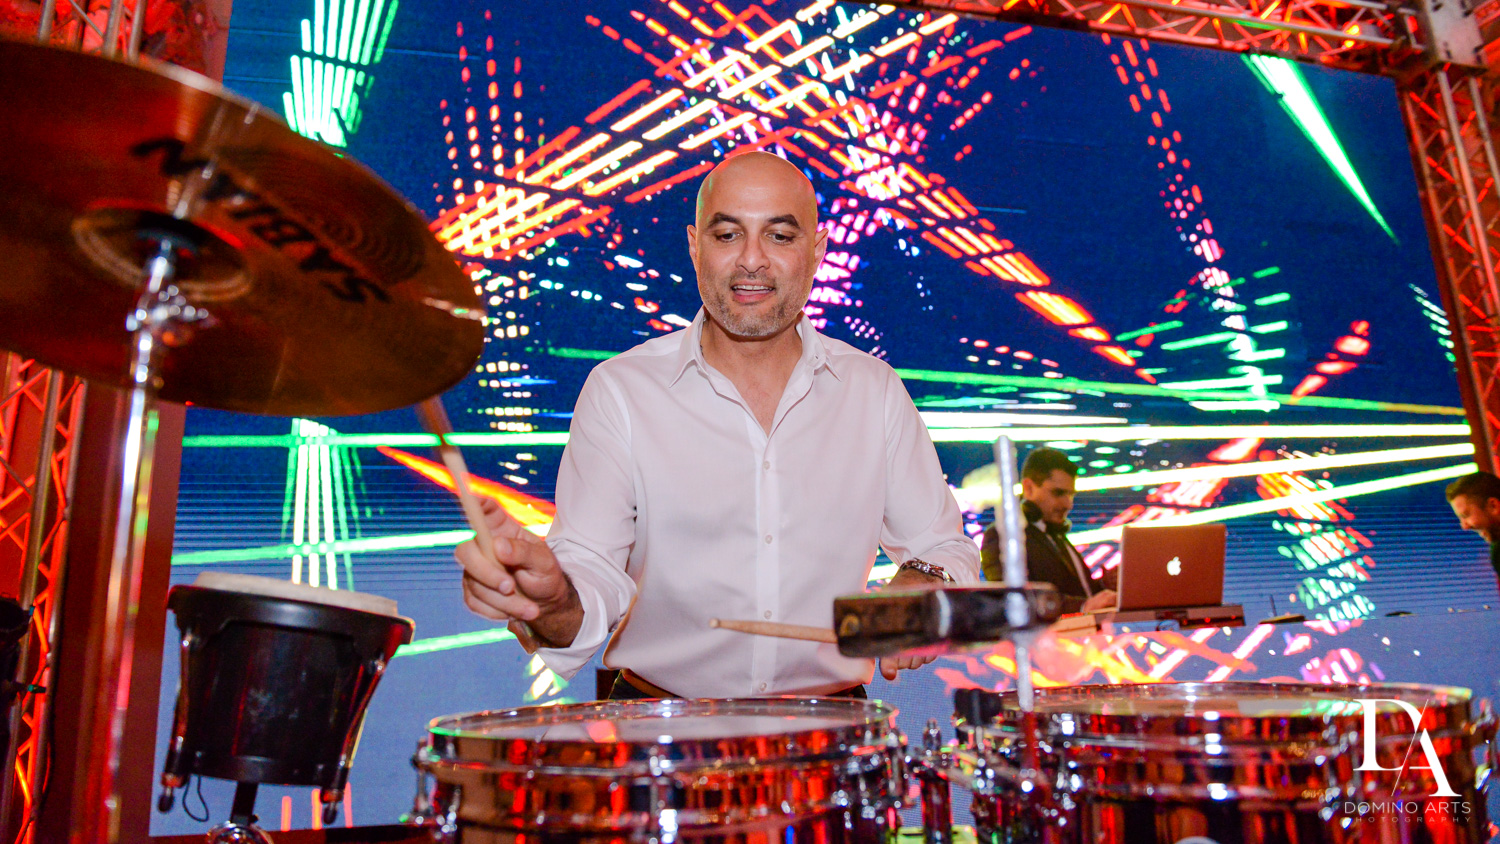 live percussionist at Madeline in Paris theme Bat Mitzvah at Boca Raton Resort and Club by Domino Arts Photography